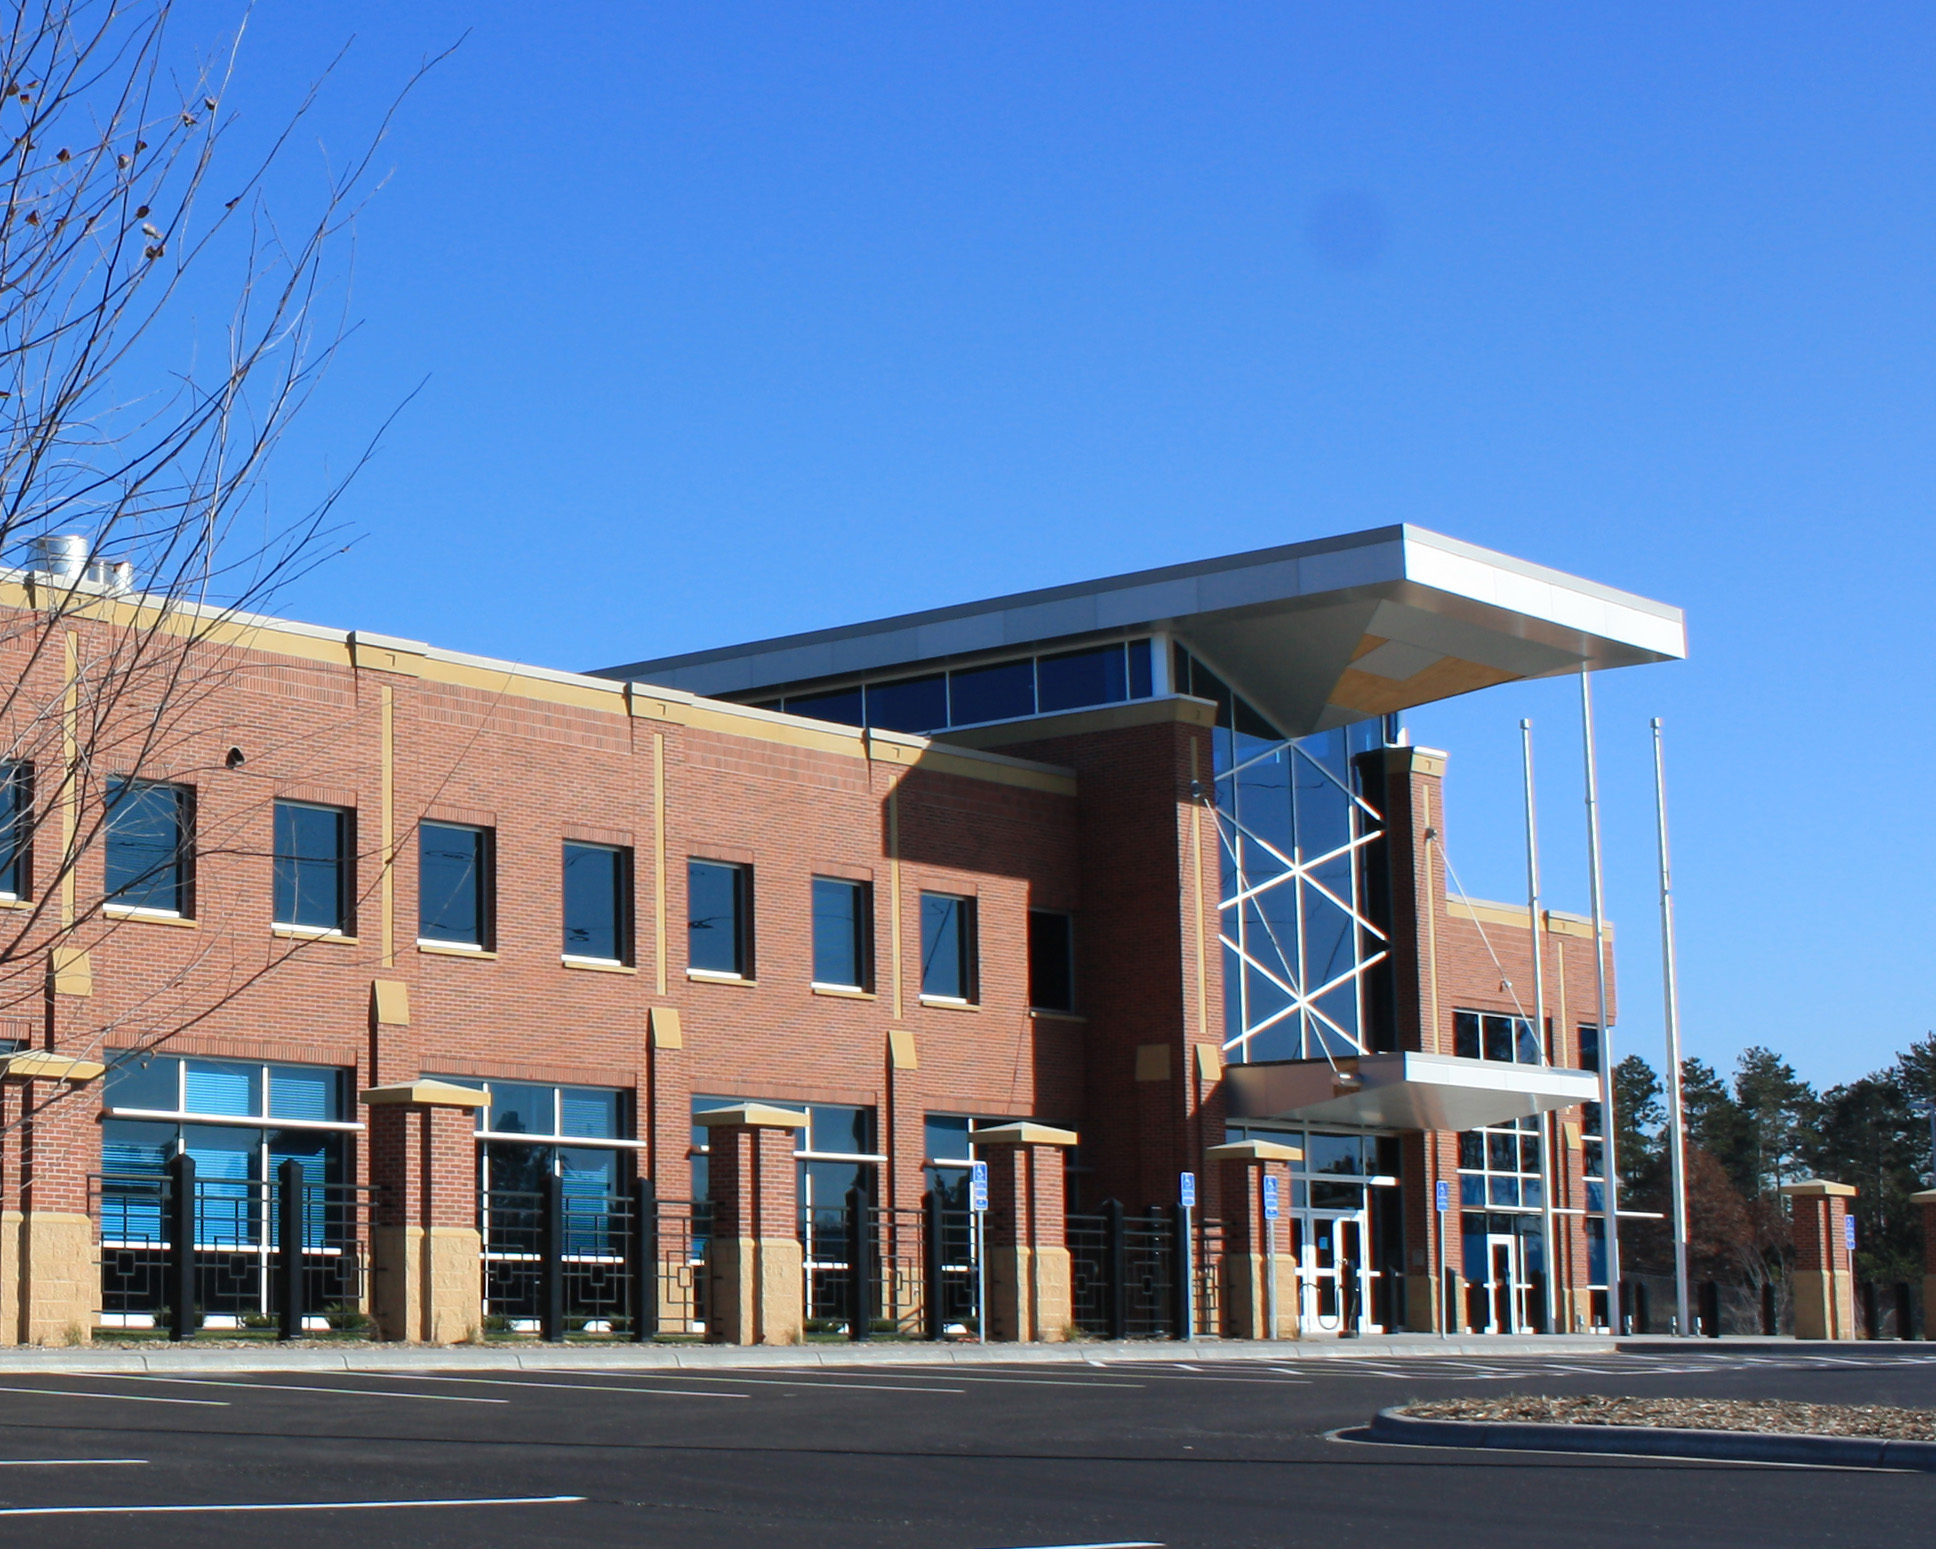 Anoka County Public Safety Campus